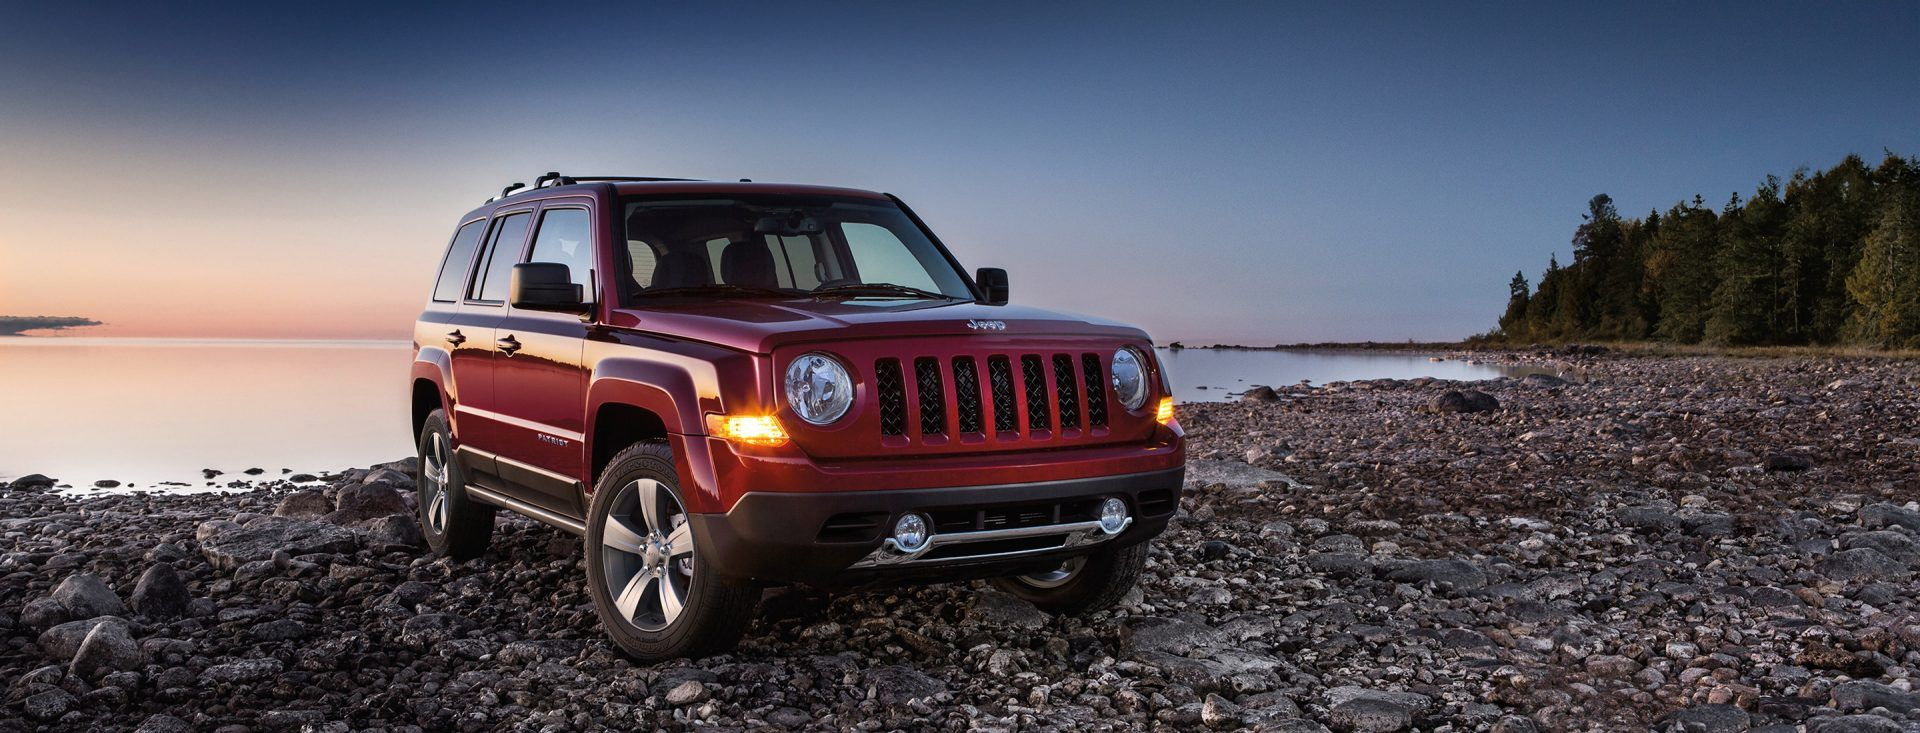 How To Reset The 2017 Jeep Patriot Oil Change Indicator Jeep